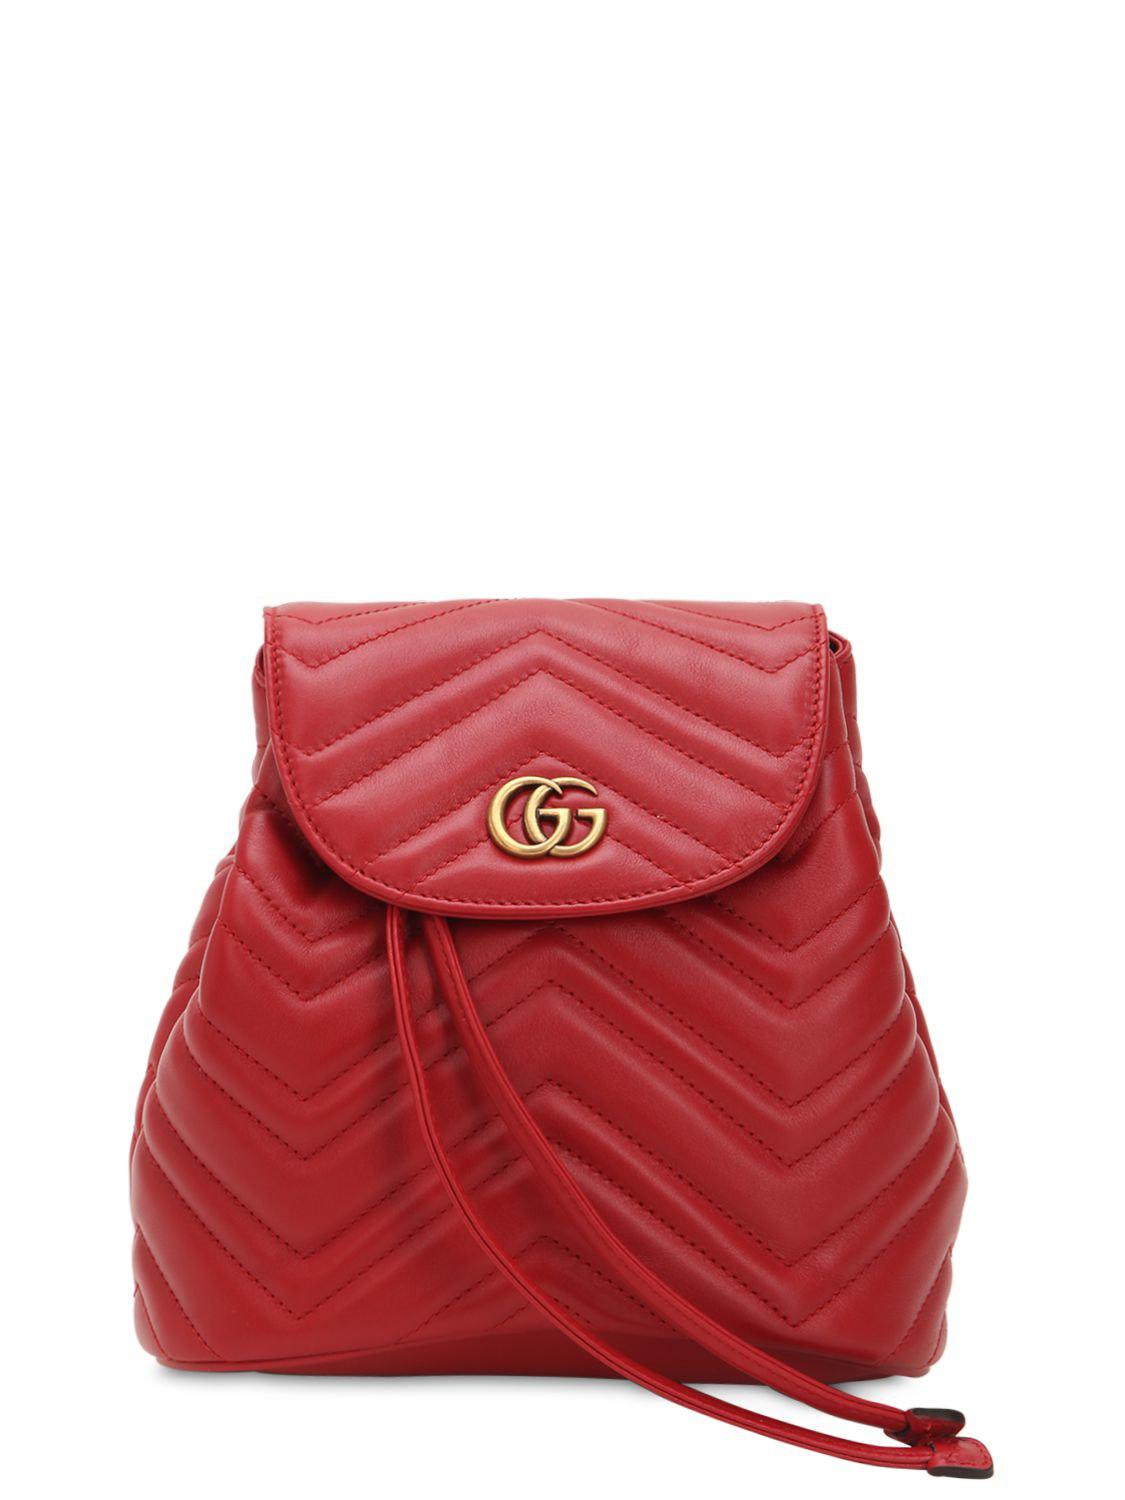 8902220f844a Gucci Mini Gg Marmont Leather Backpack in Red - Save 12% - Lyst